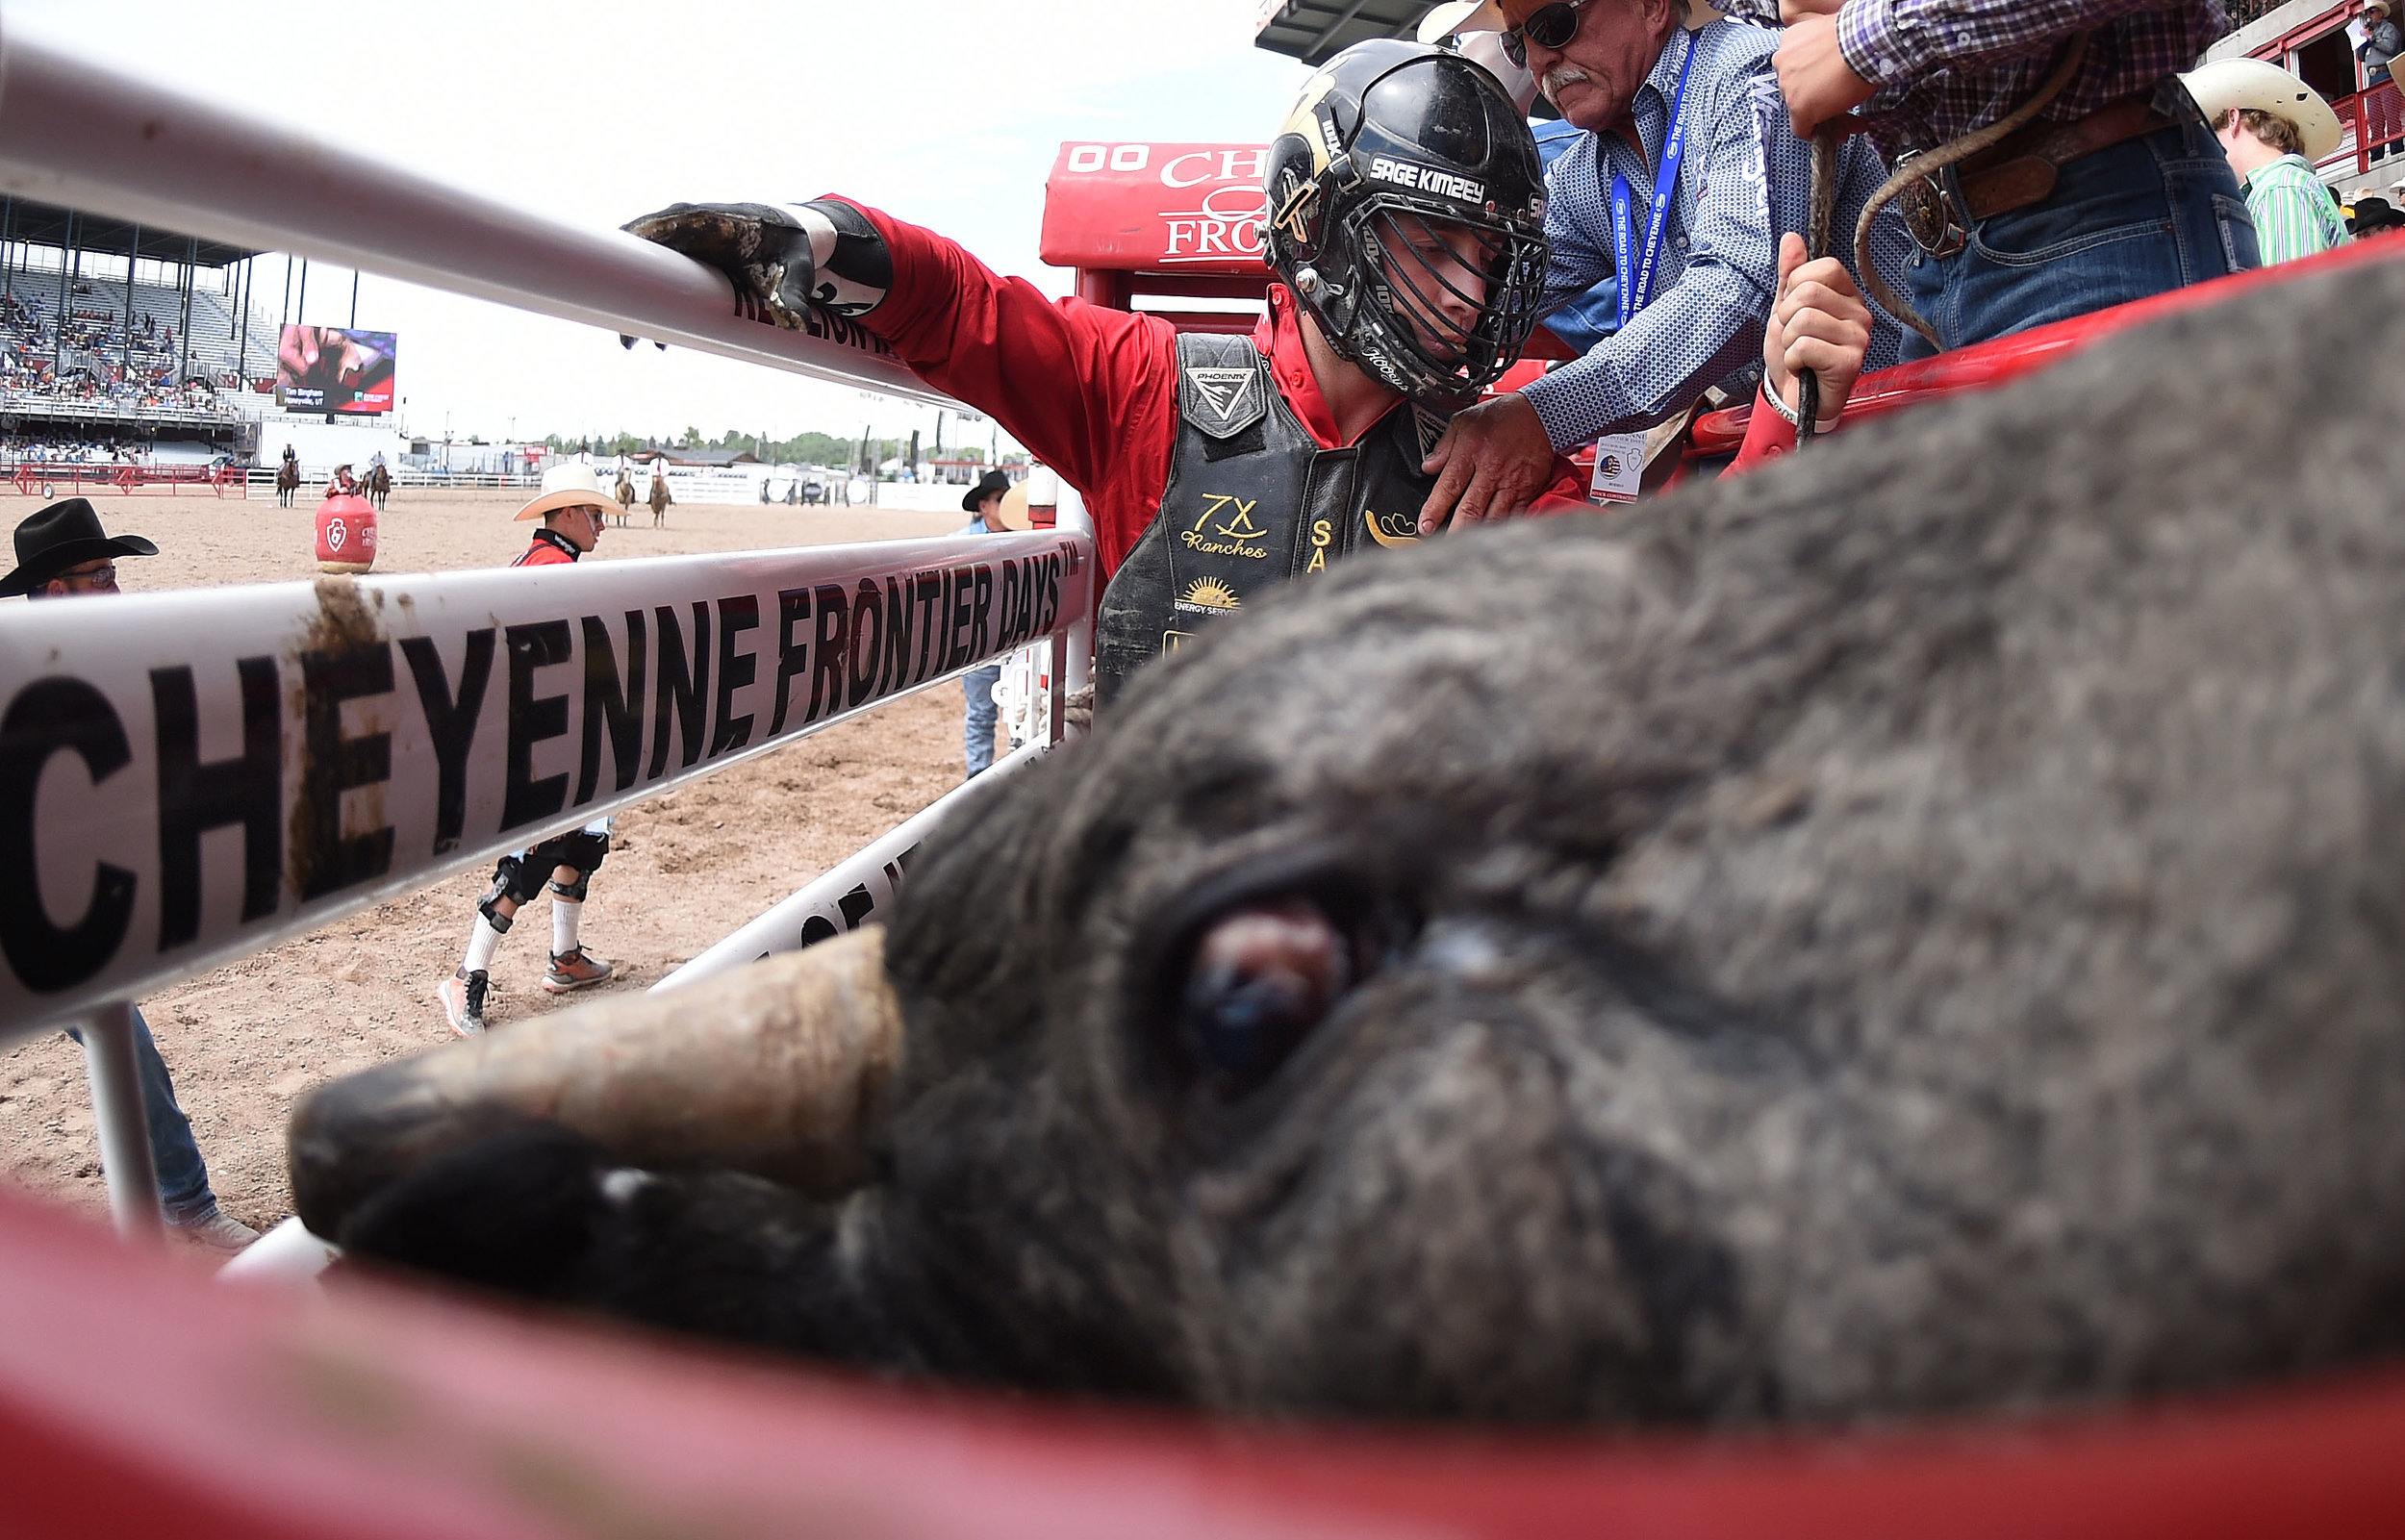 Champion bull rider Sage Kimzey, from Strong City, Oklahoma, prepares to ride Blue Stone during the 6th performance at the 122nd Cheyenne Frontier Days Rodeo at Frontier Park in Cheyenne, Wyoming Wednesday, July 25, 2018.